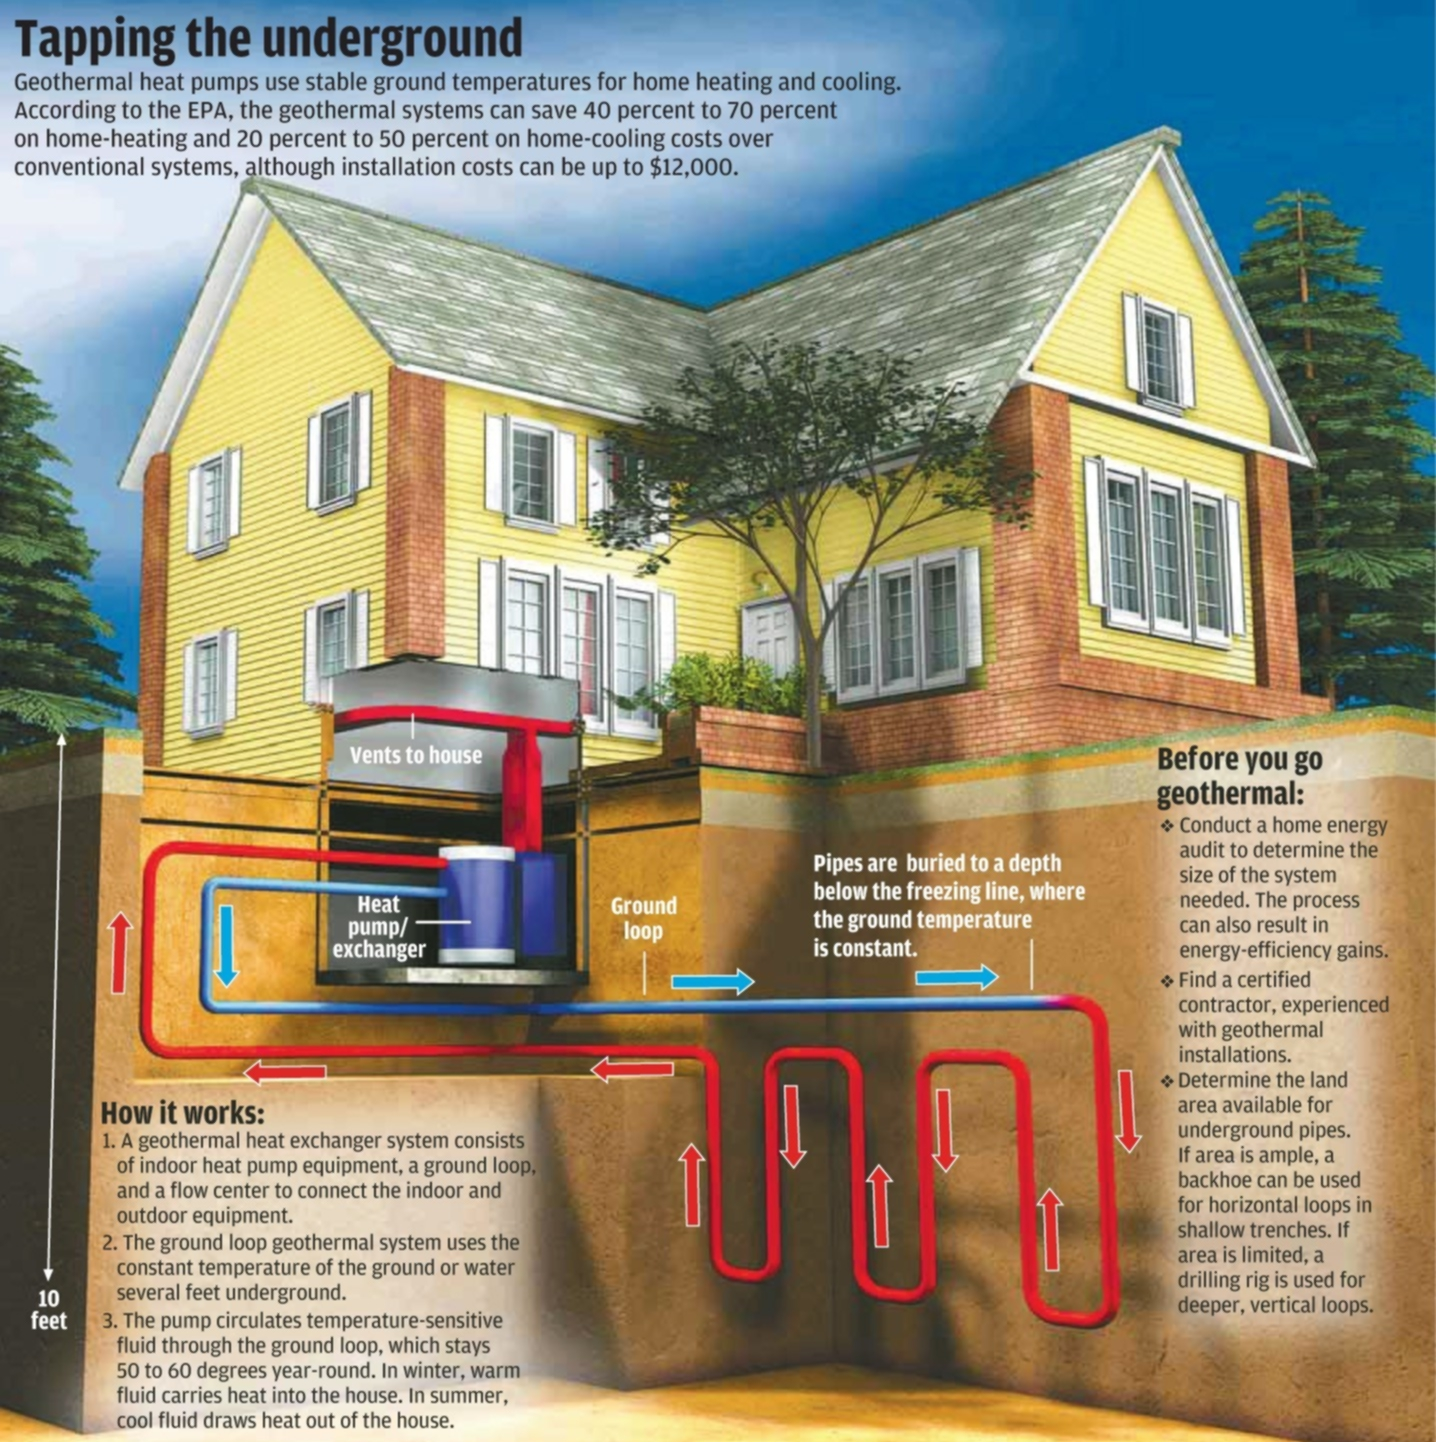 How geothermal energy works